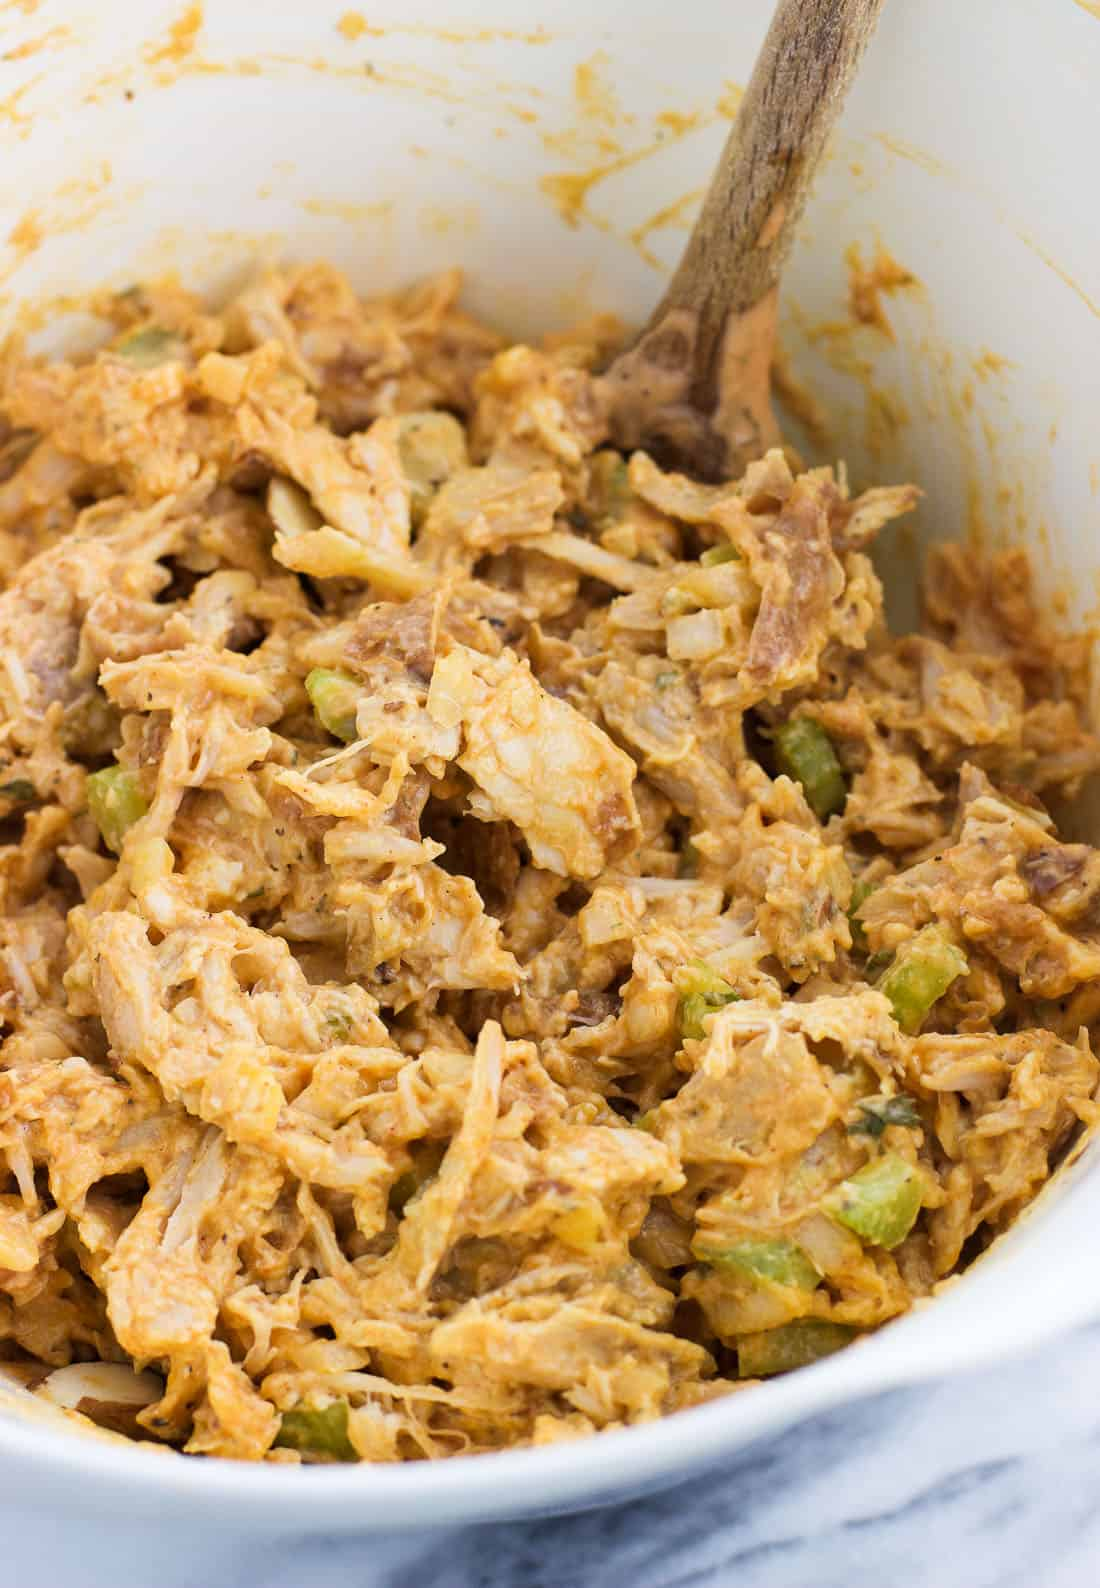 Mixed together buffalo chicken salad in a bowl with a wooden spoon